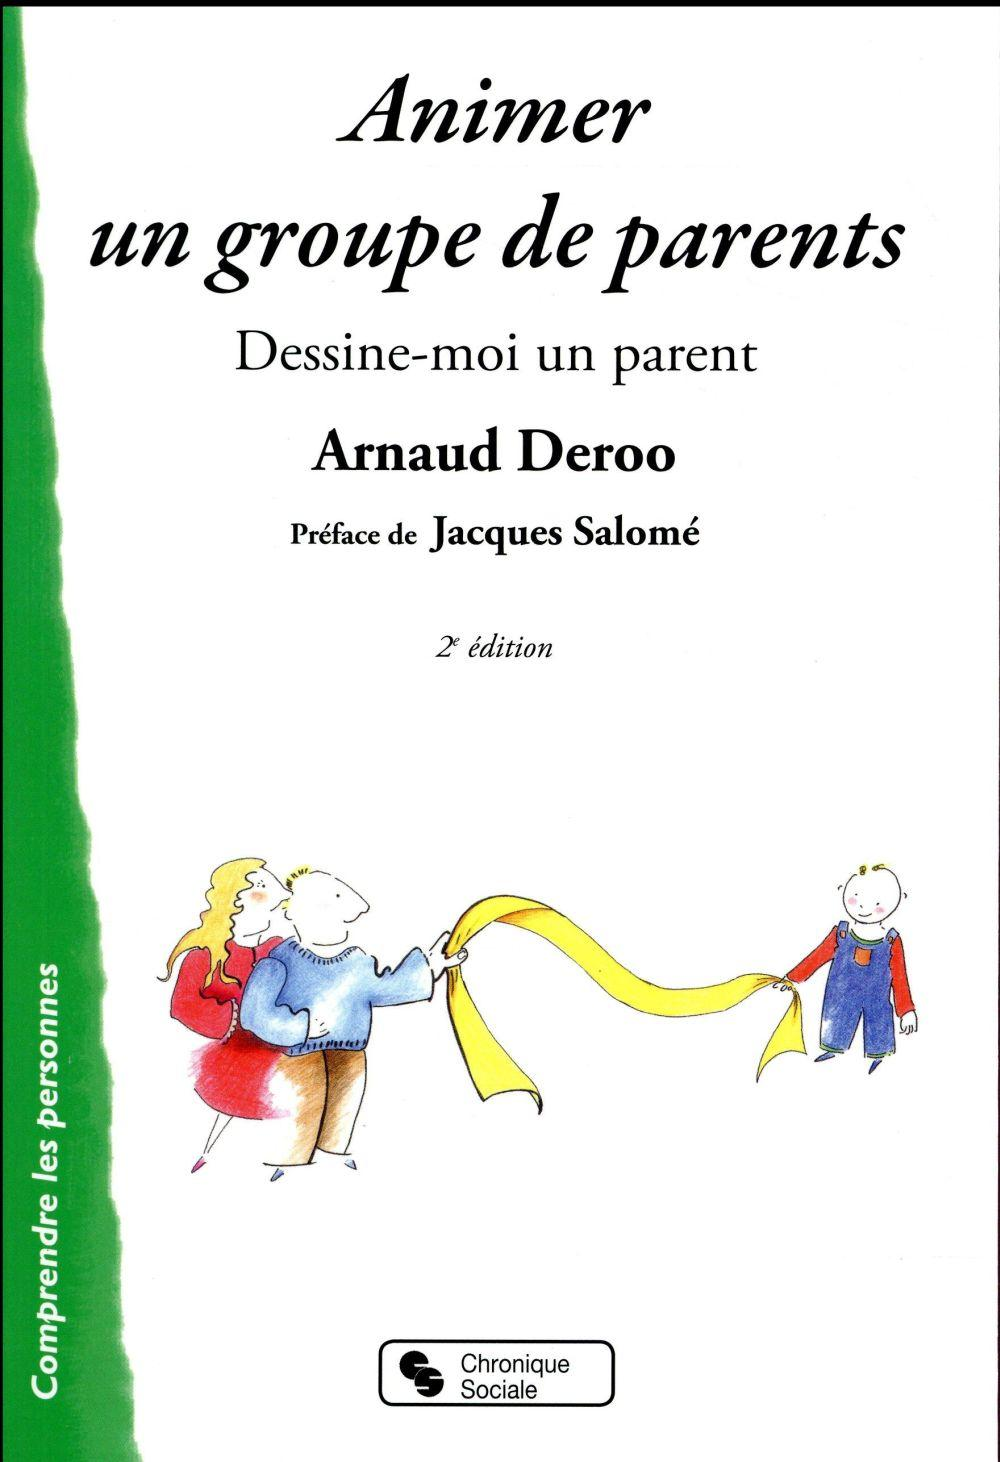 Animer un groupe de parents (2e édition)  - Arnaud Deroo